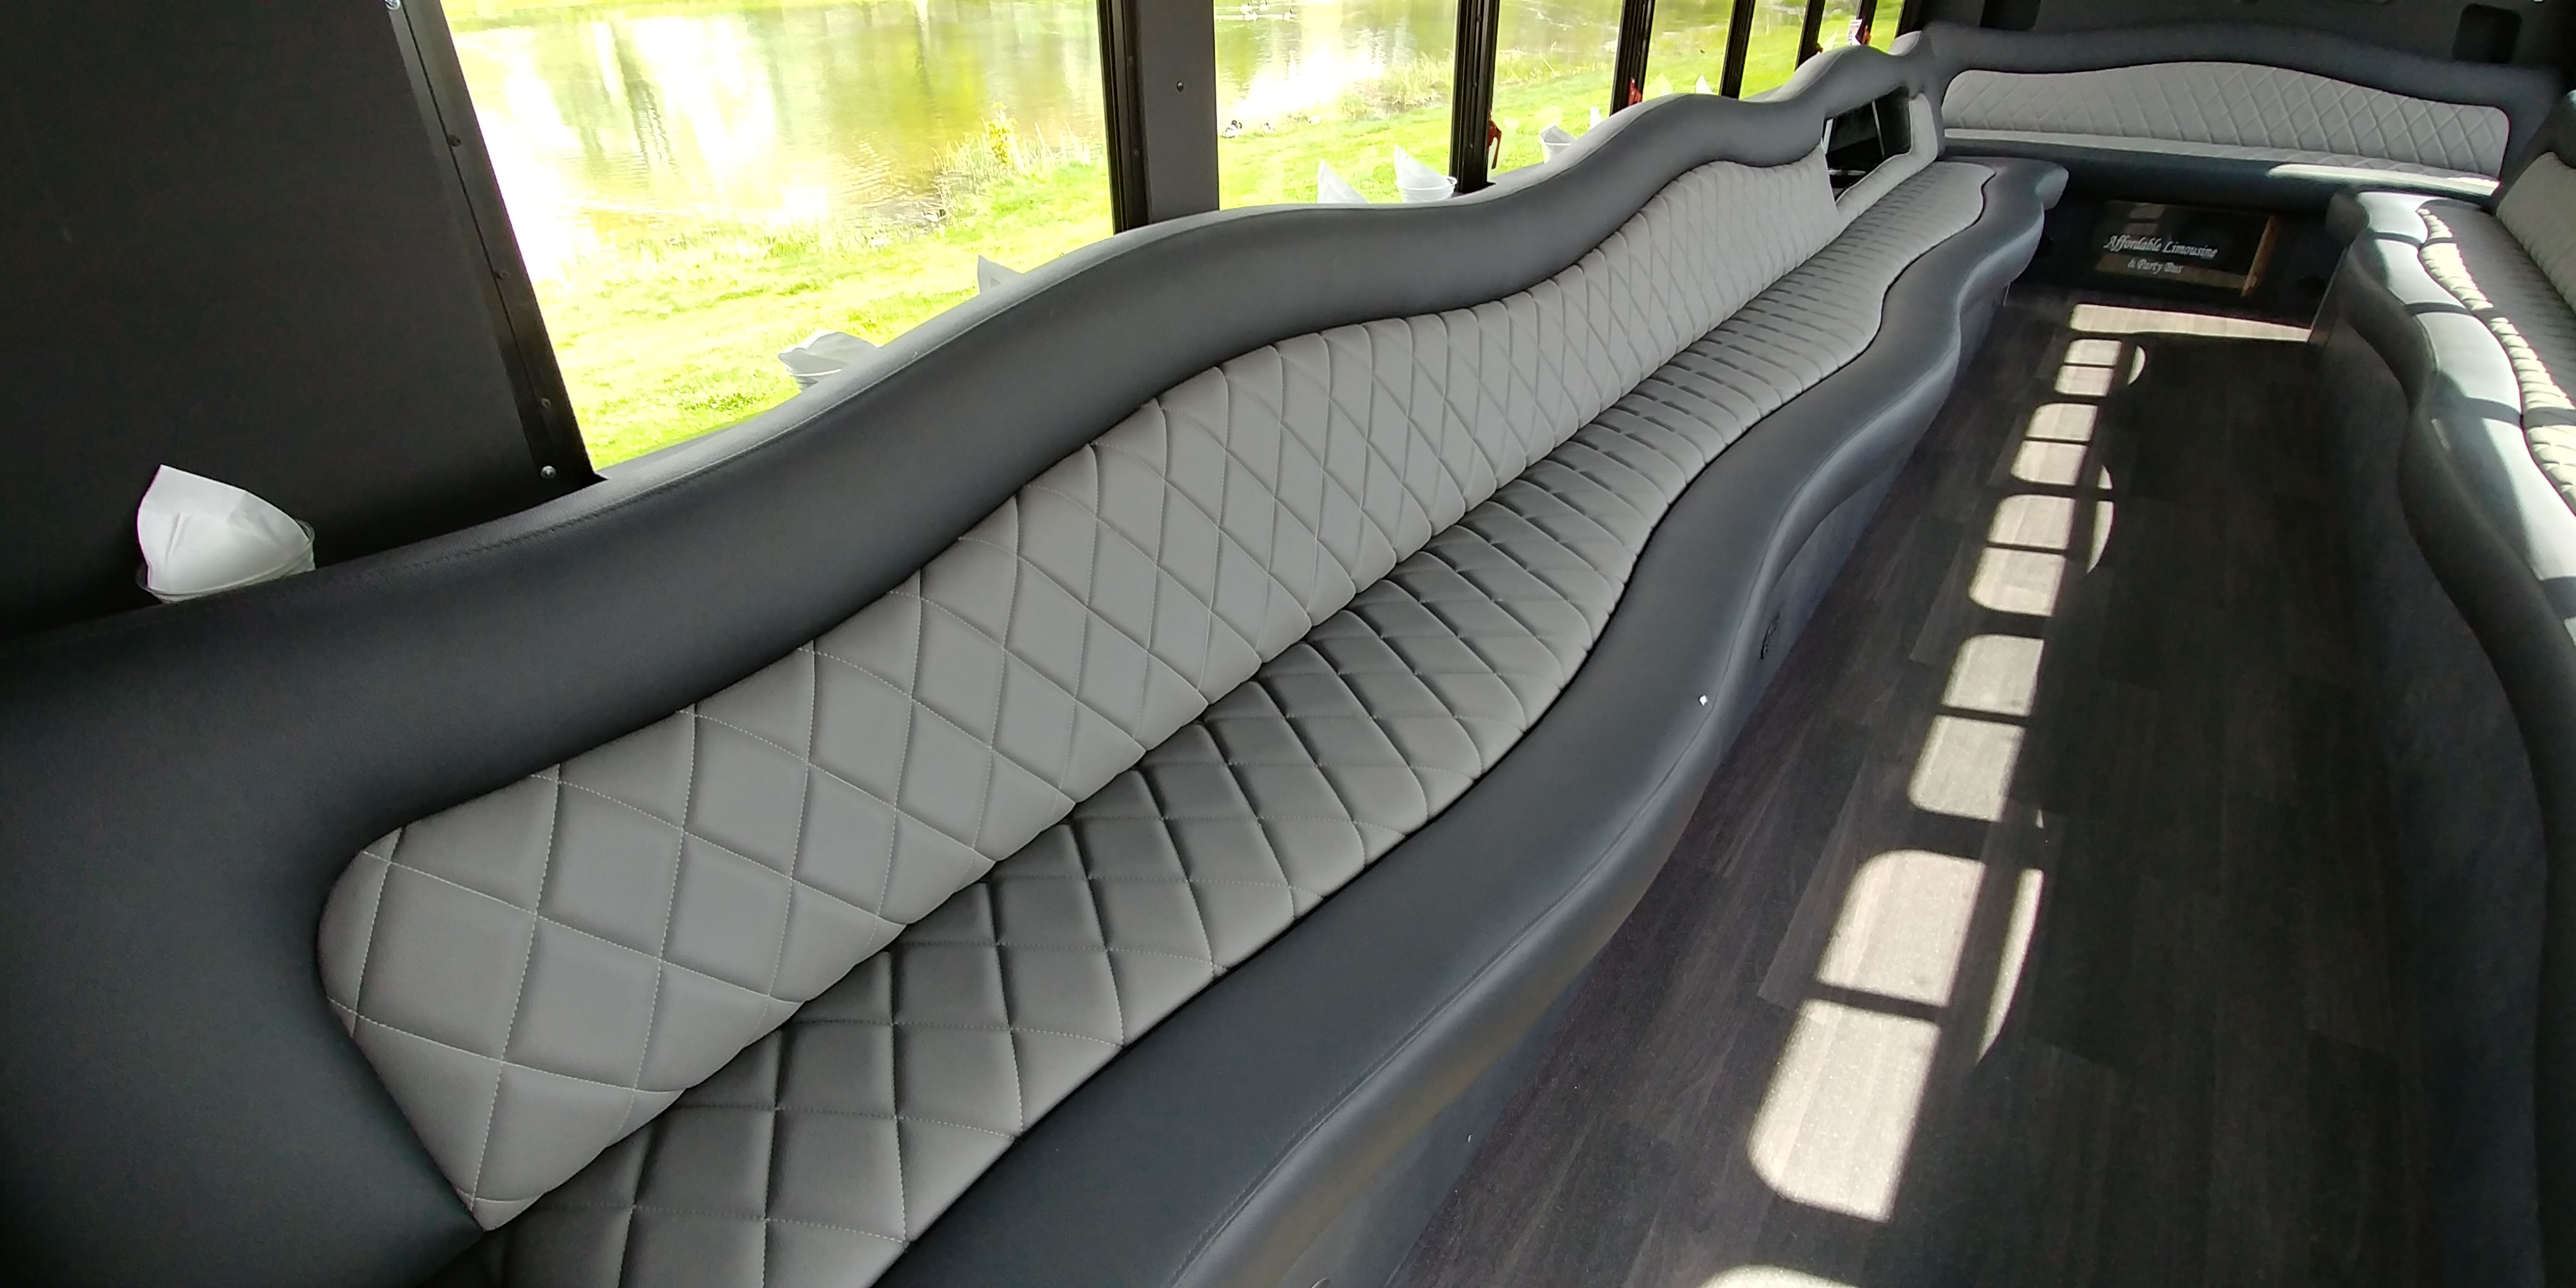 28 Passenger Luxury Limo Bus Interior 4